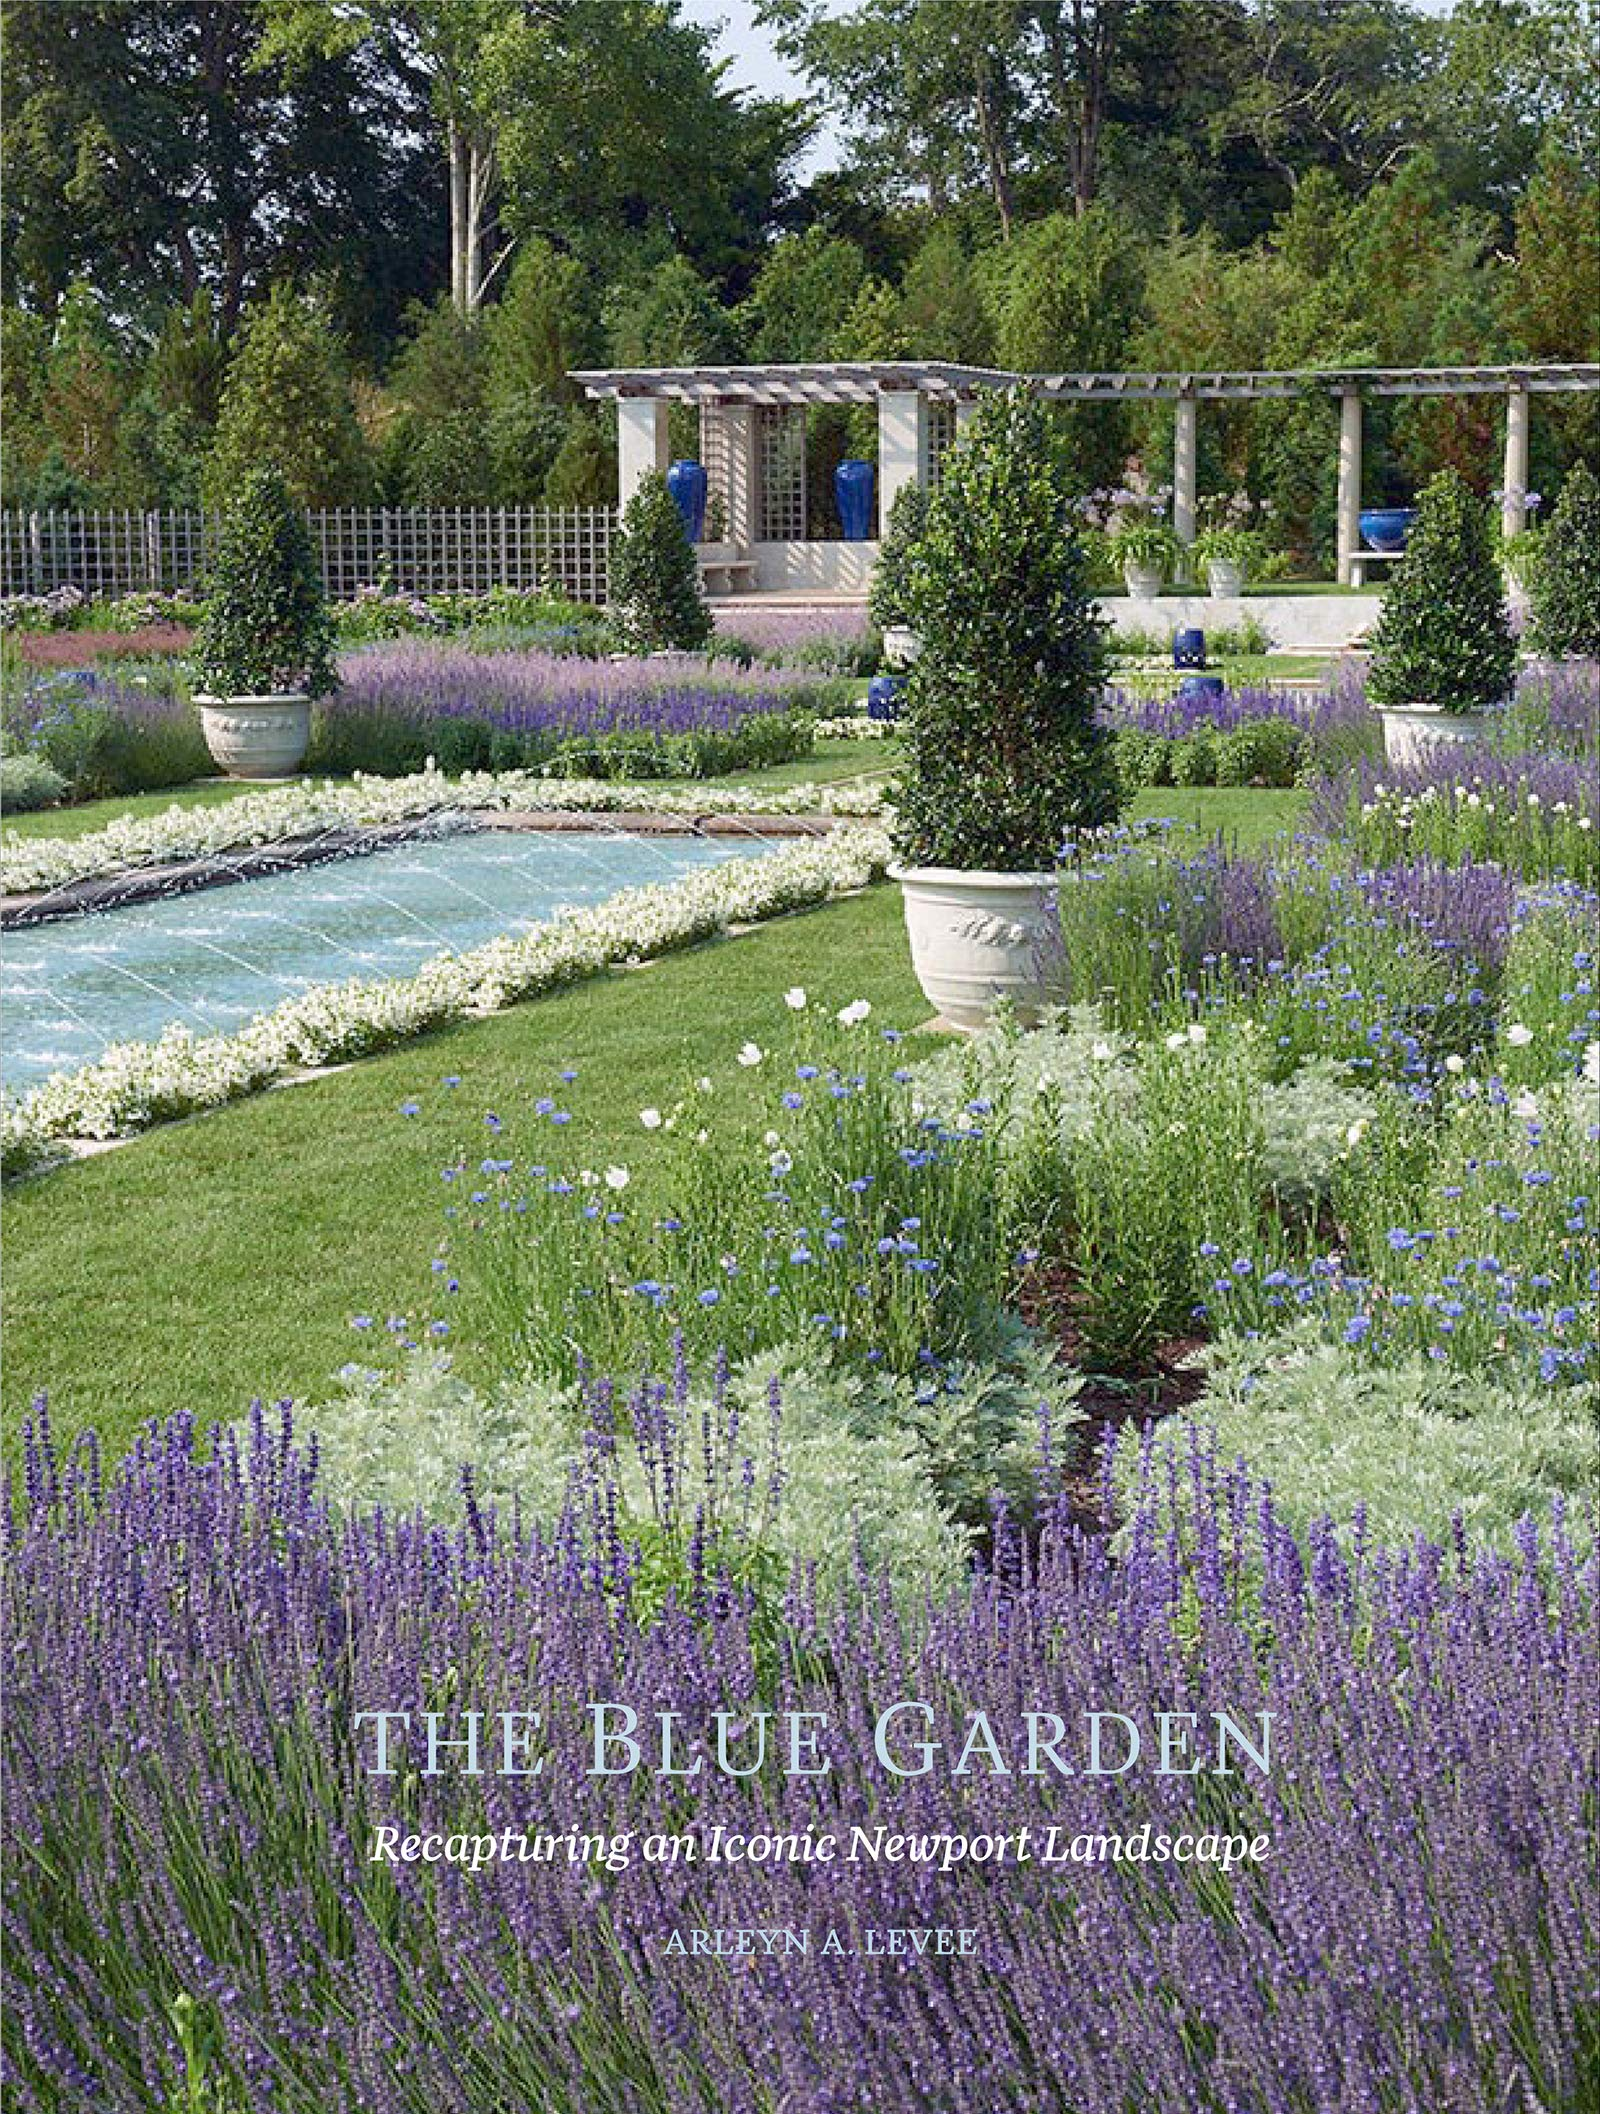 Now Available - The Blue Garden: Recapturing an Iconic Newport Landscape